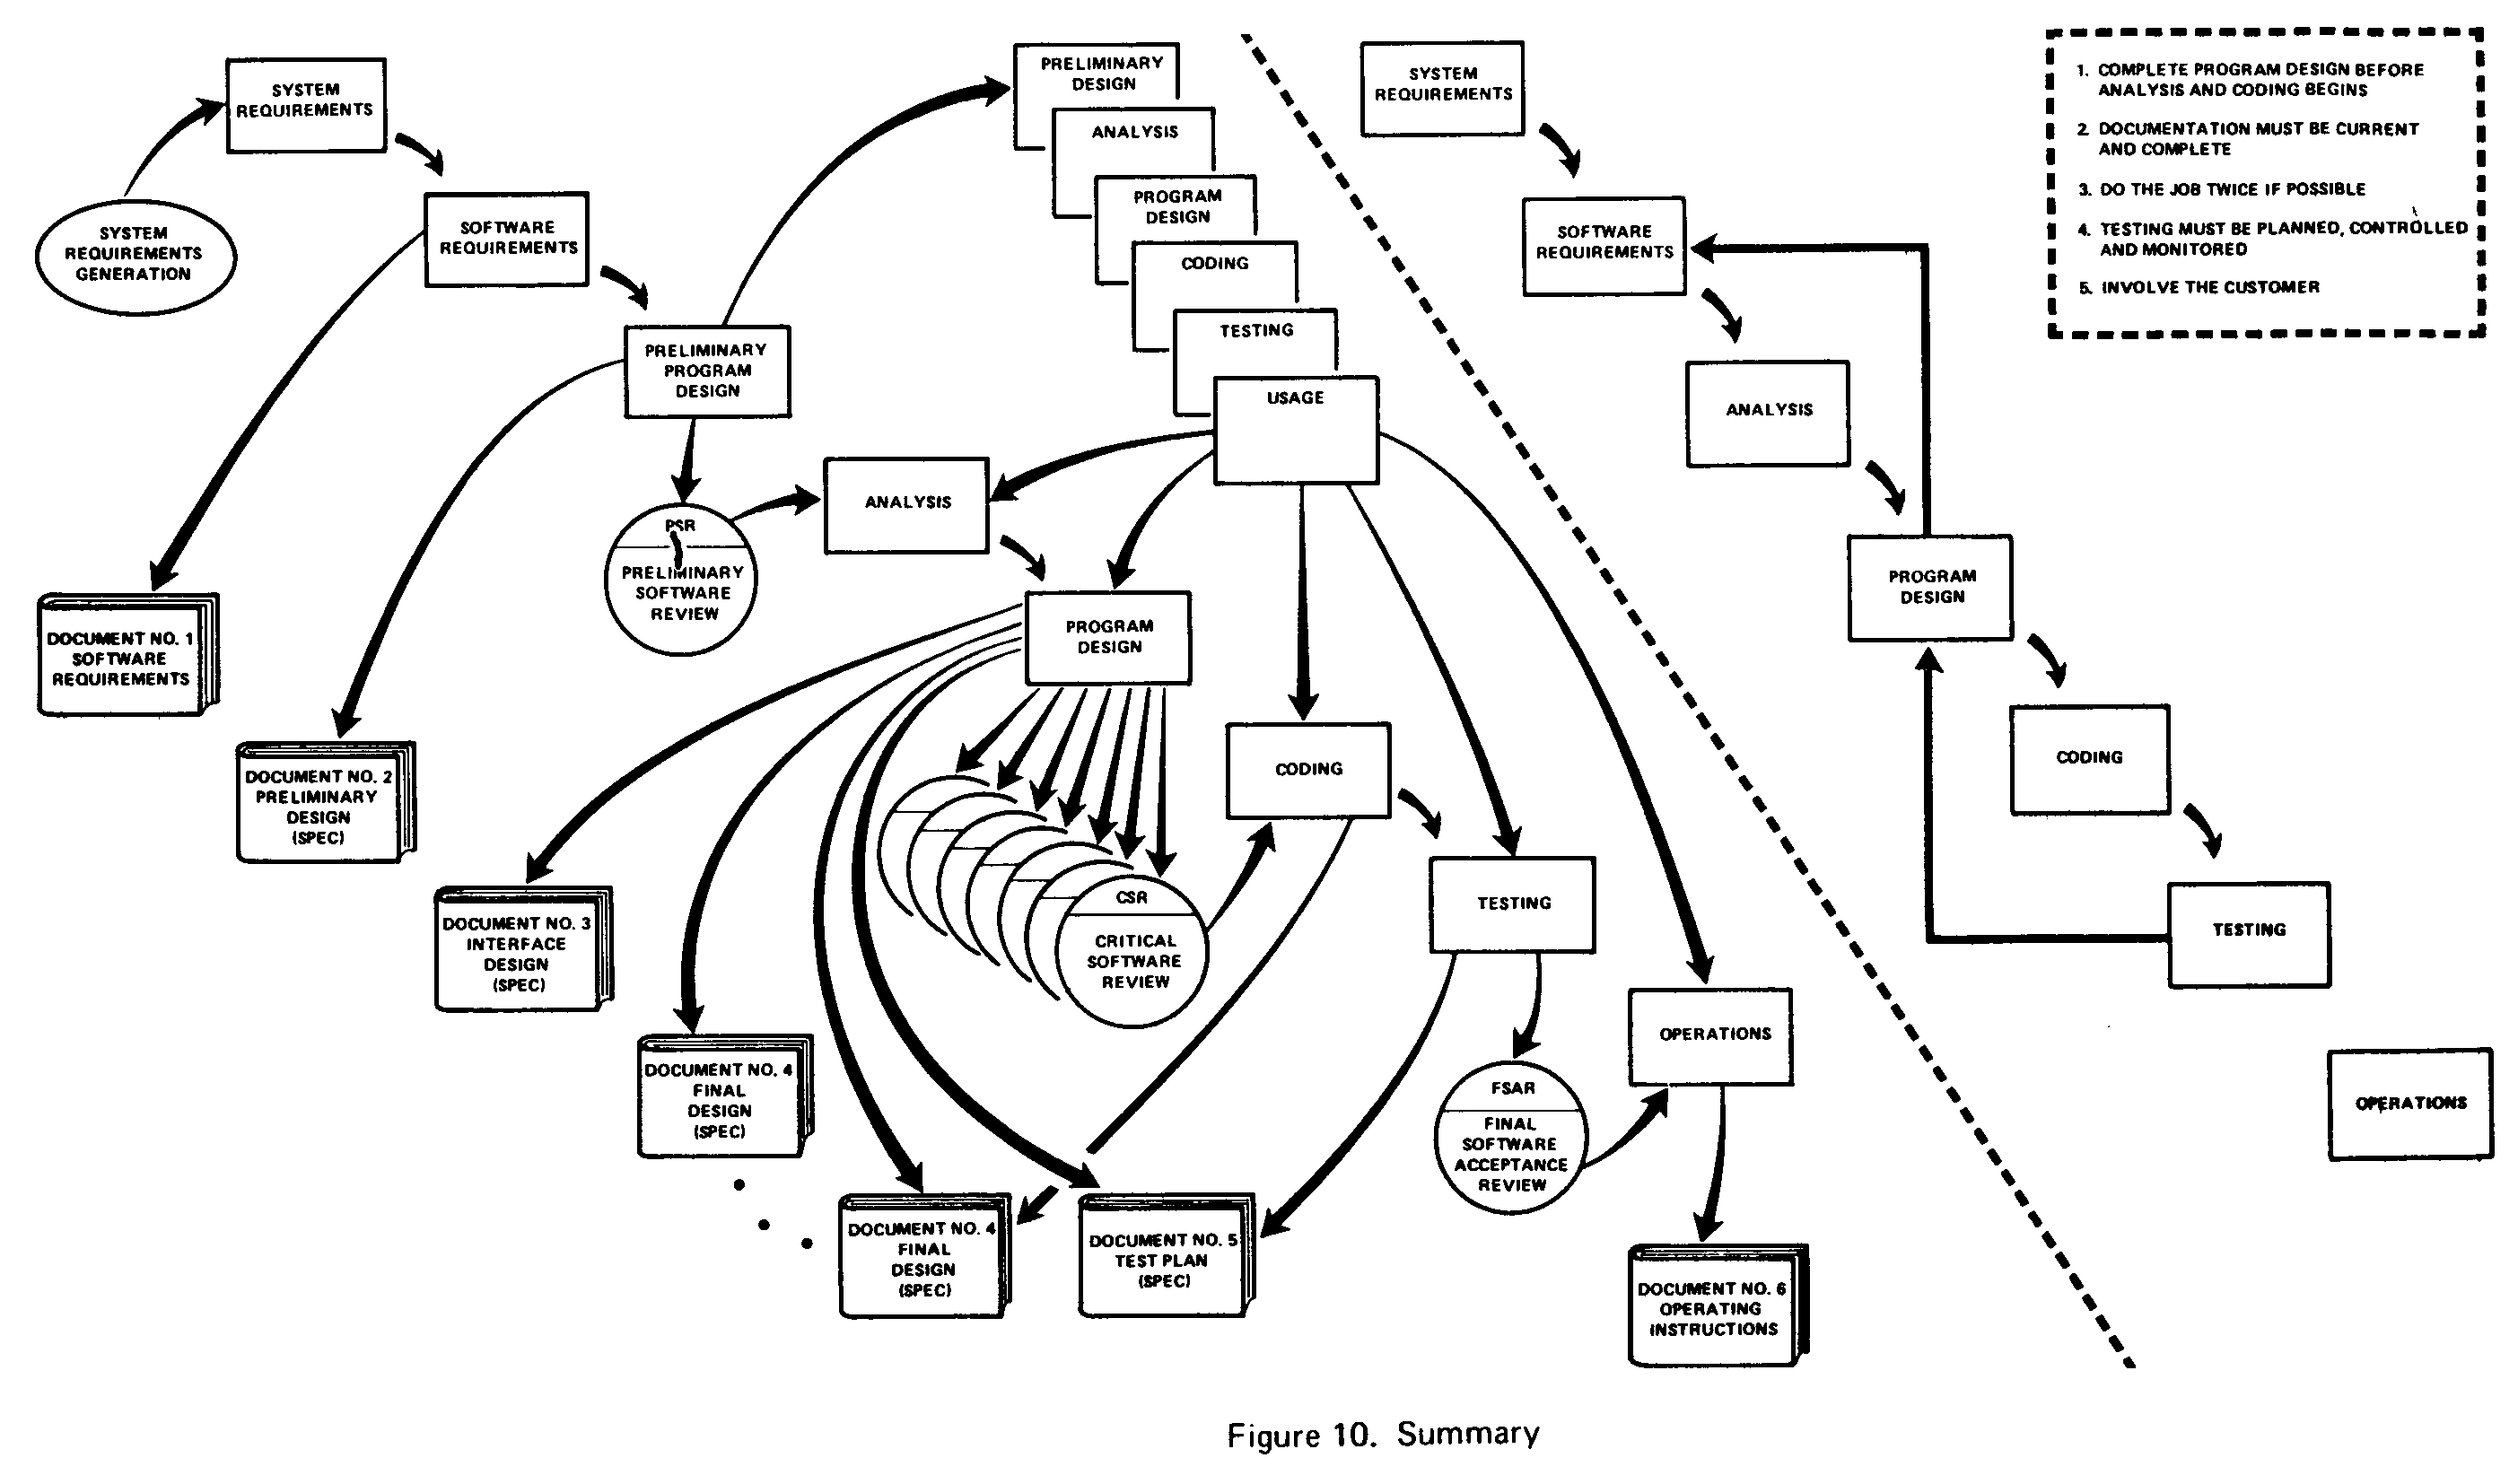 Royce 1970 - Managing the development of large software systems: concepts and techniques